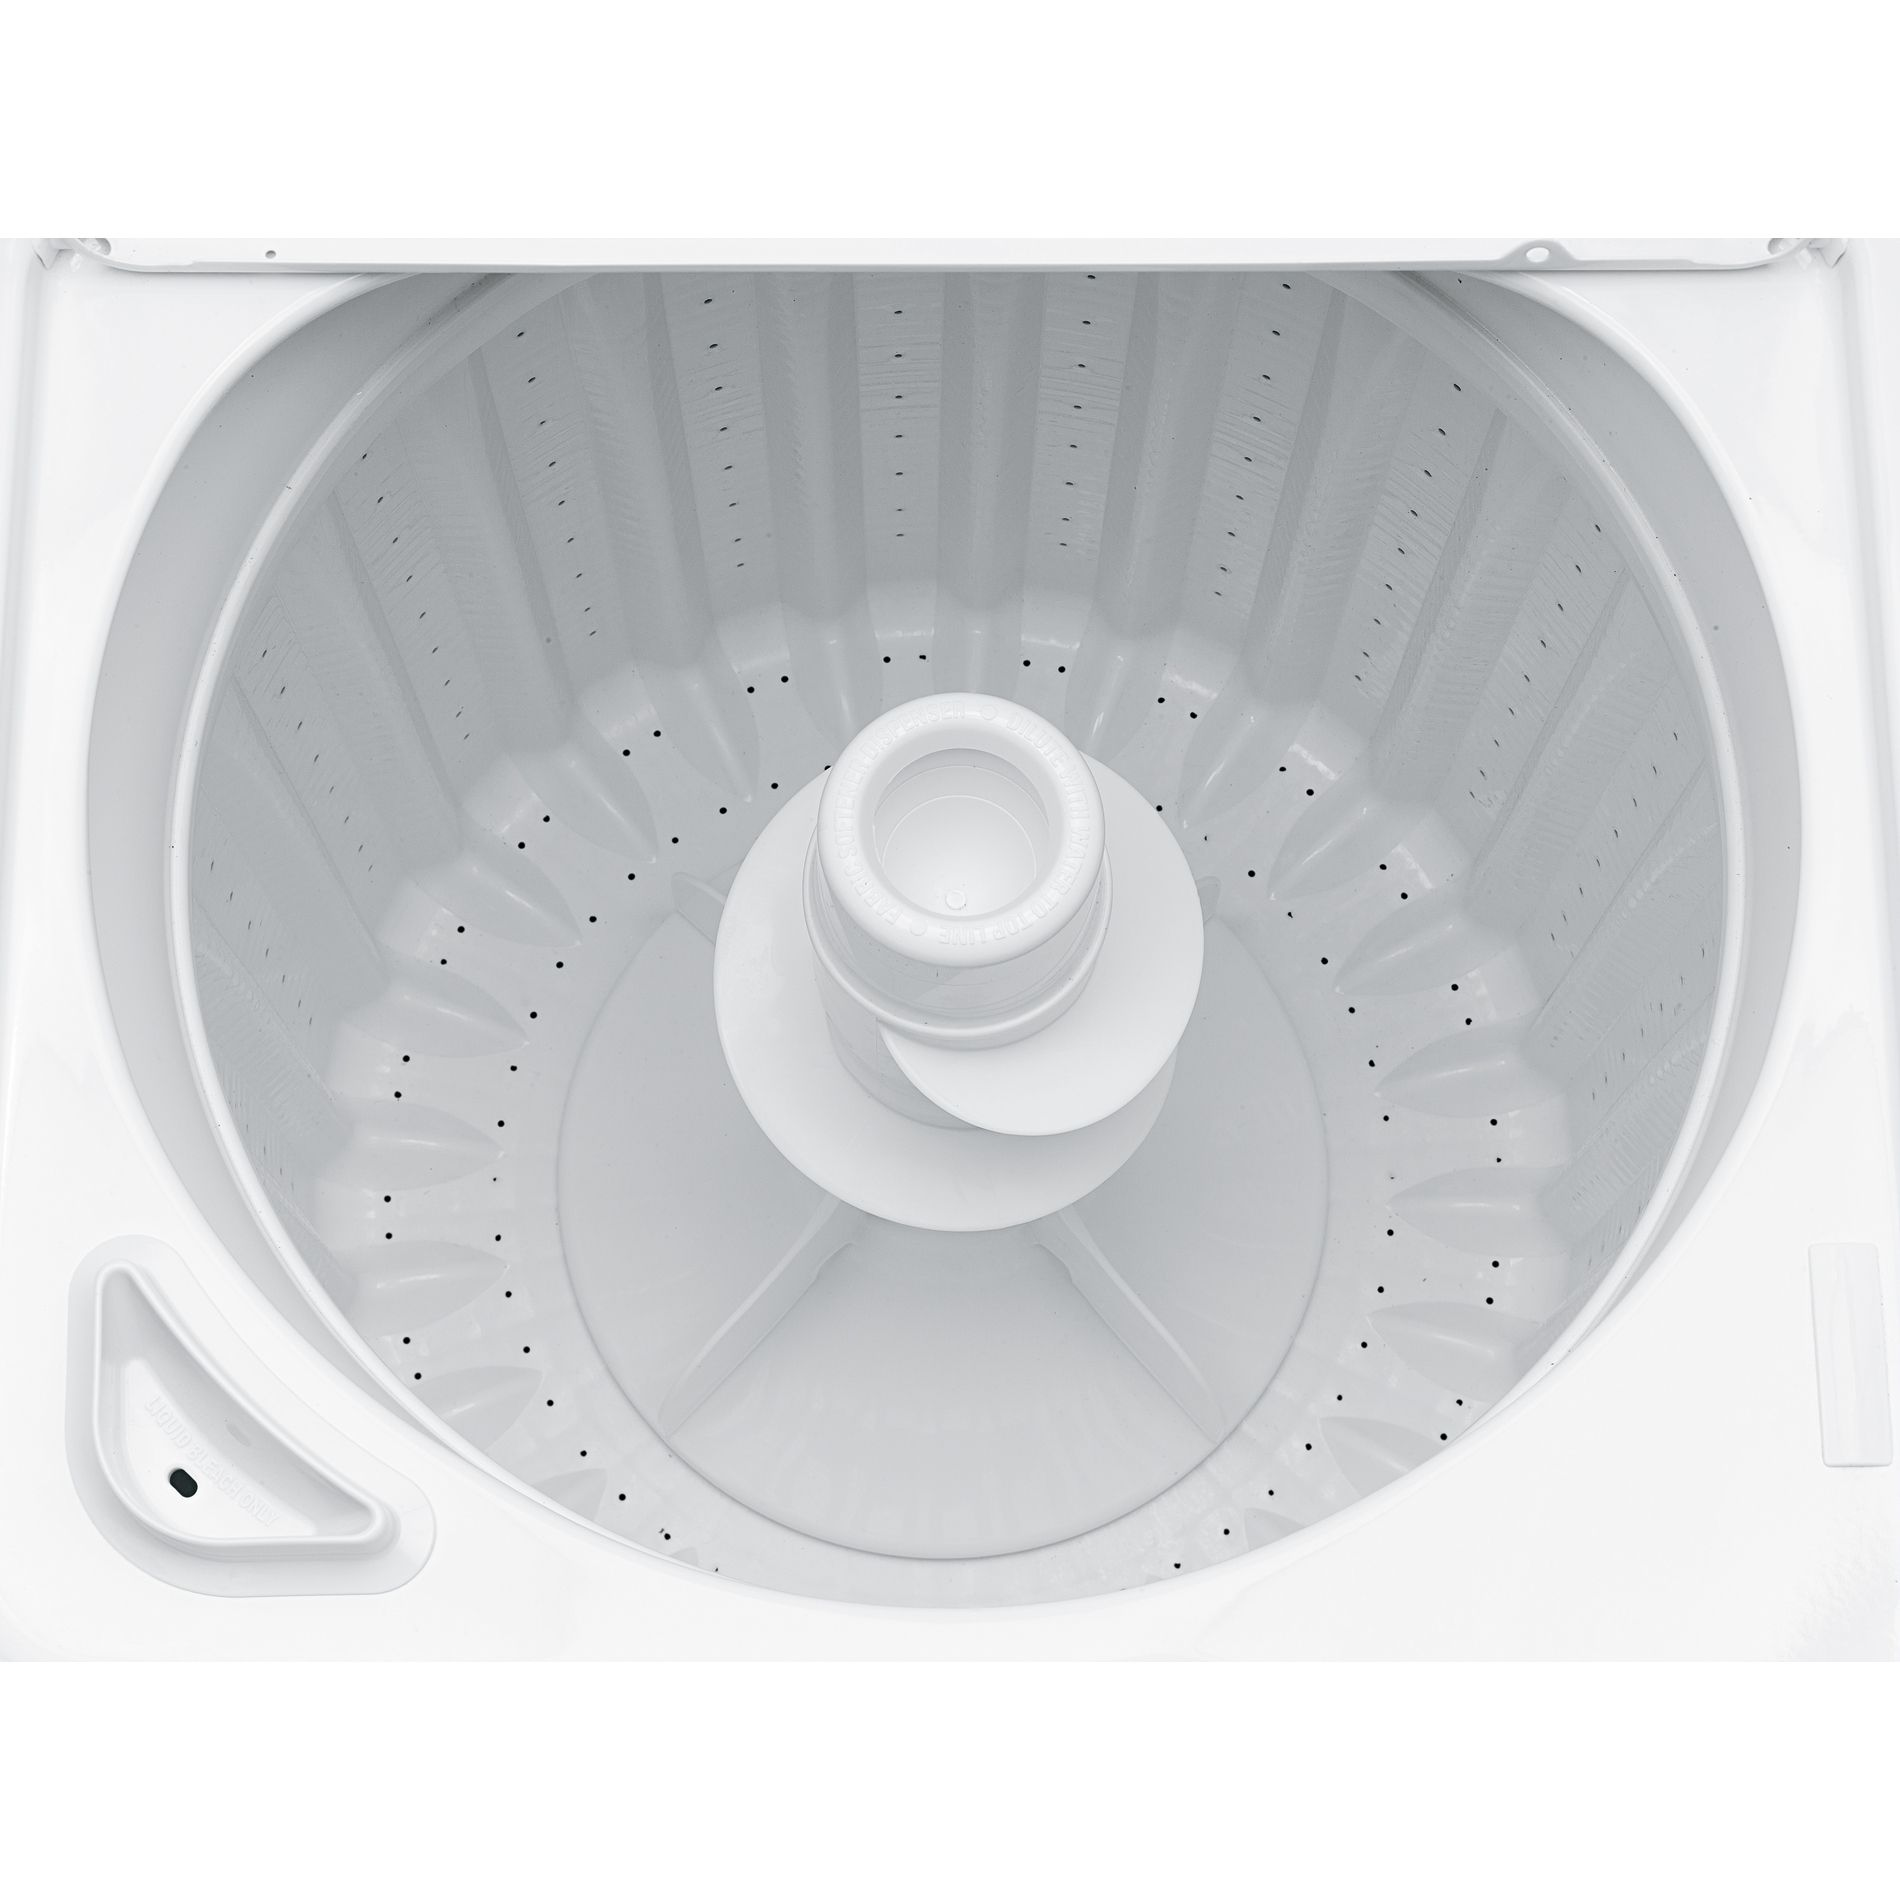 GE 3.7 cu. ft. Top Load Washer - White